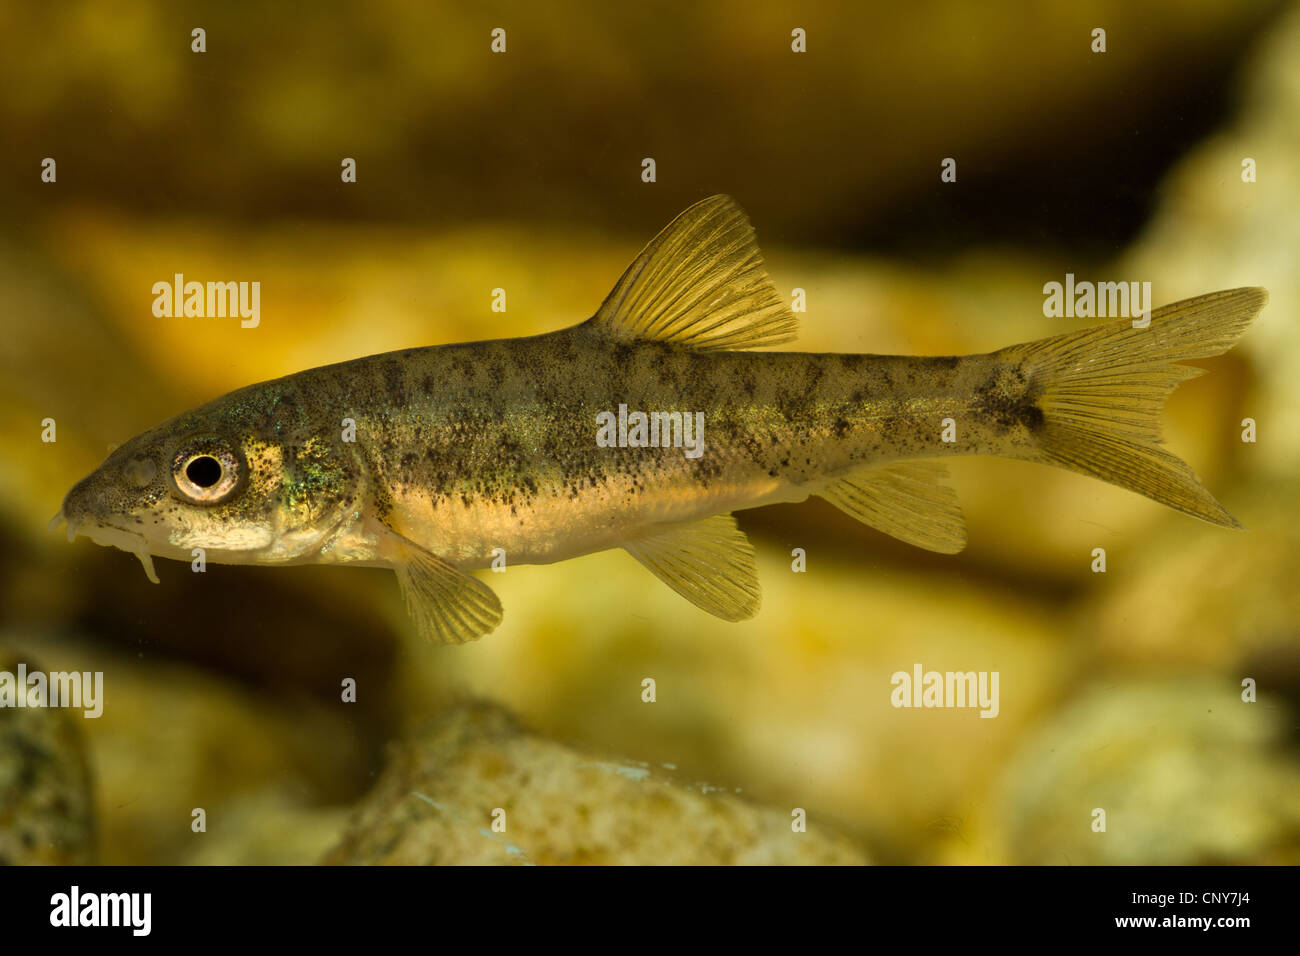 barbel (Barbus barbus), juvenile of 30 mm, Germany, Bavaria, Isental - Stock Image